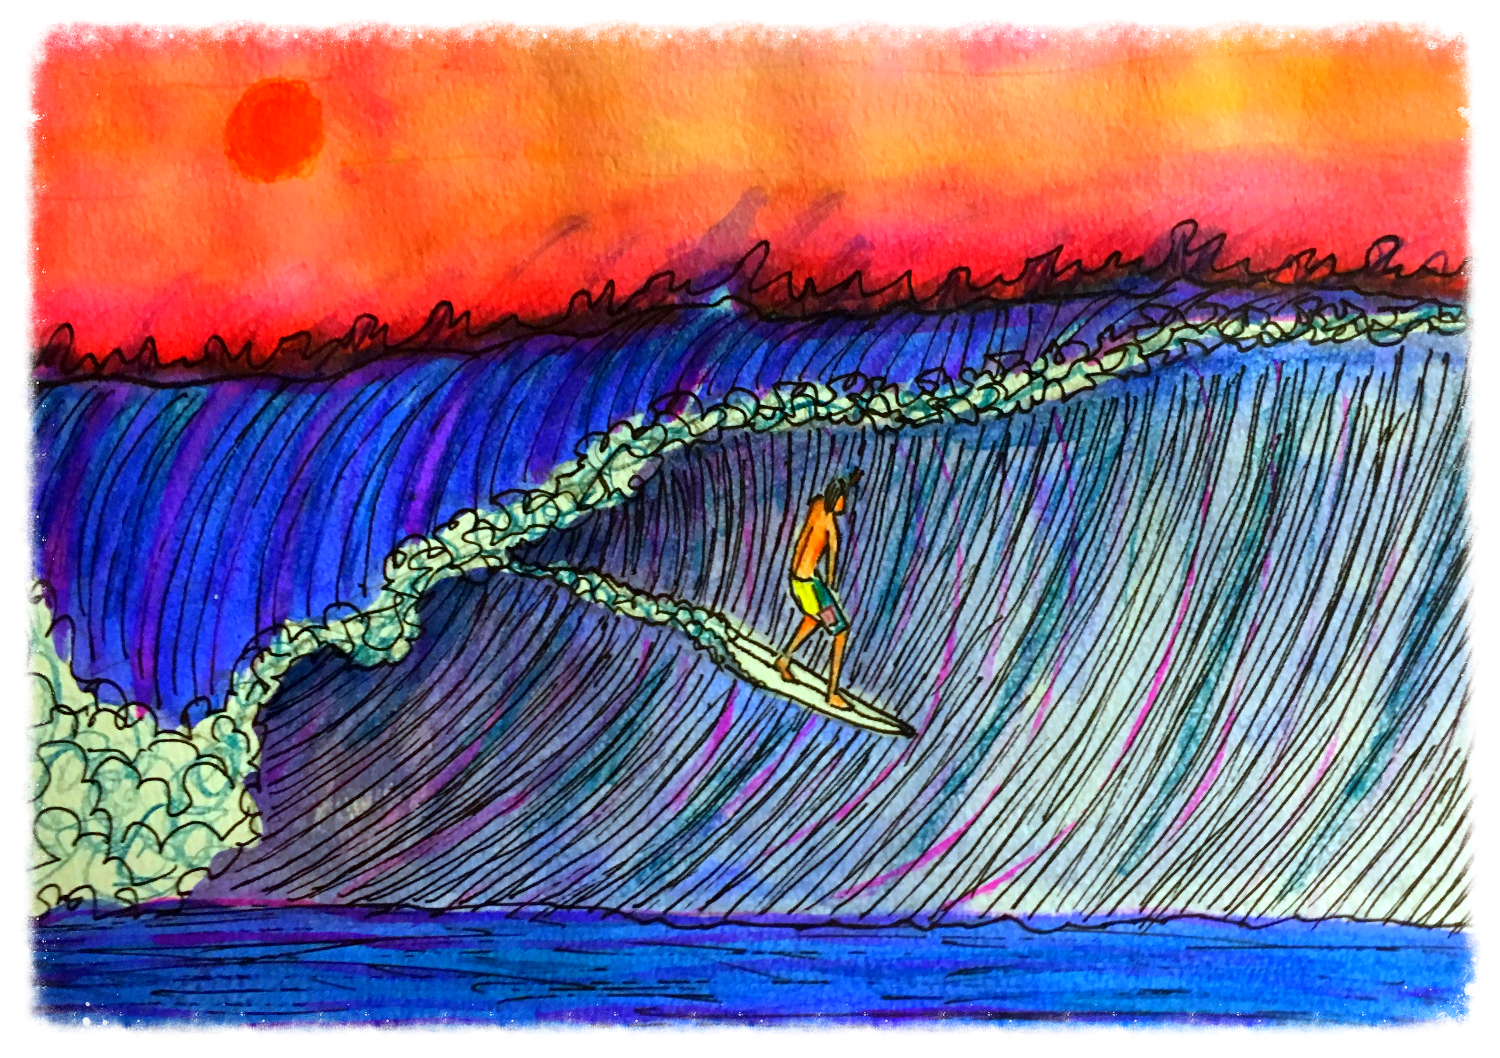 Surf Art by Brent March #1